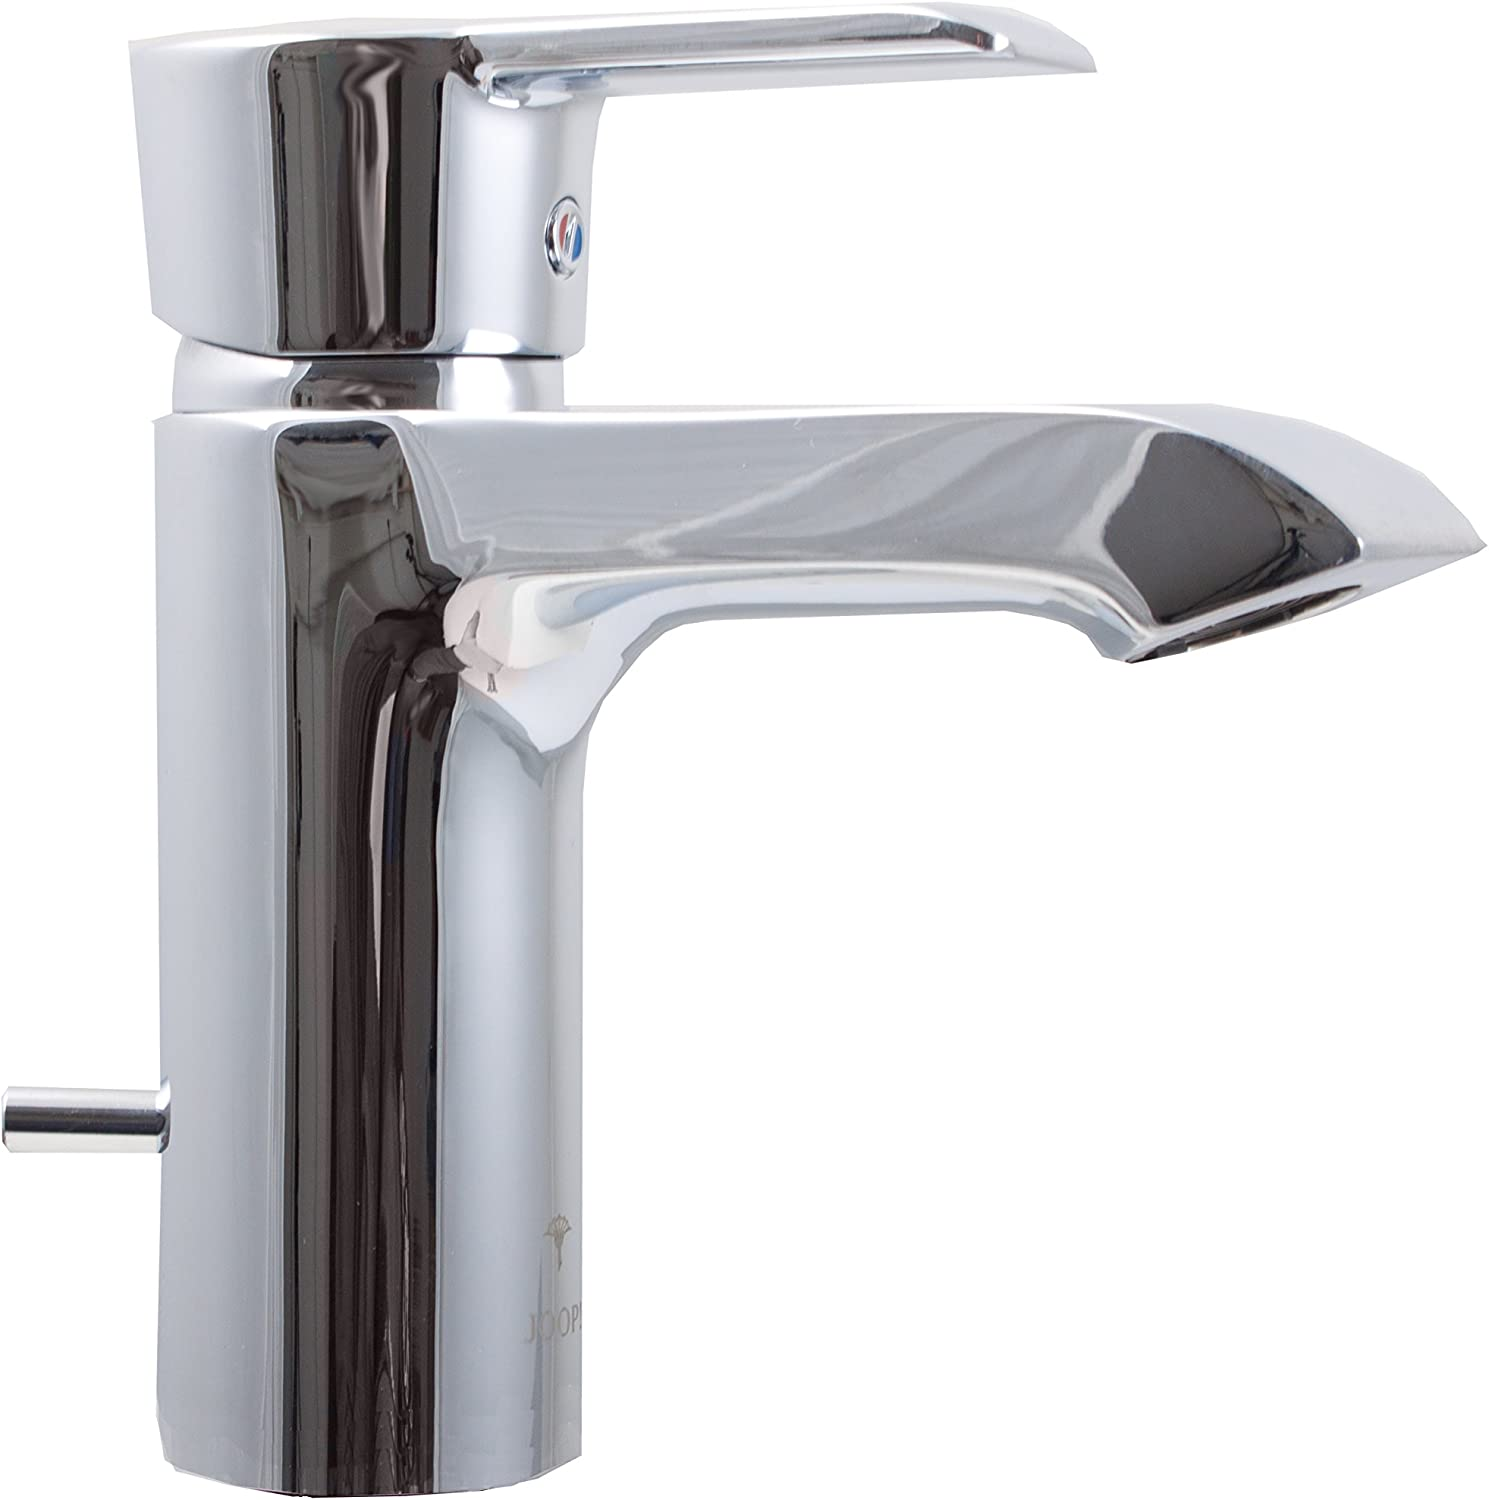 Kludi Joop. Single-Handle Sink Mixer Tap, Chrome, 130230560